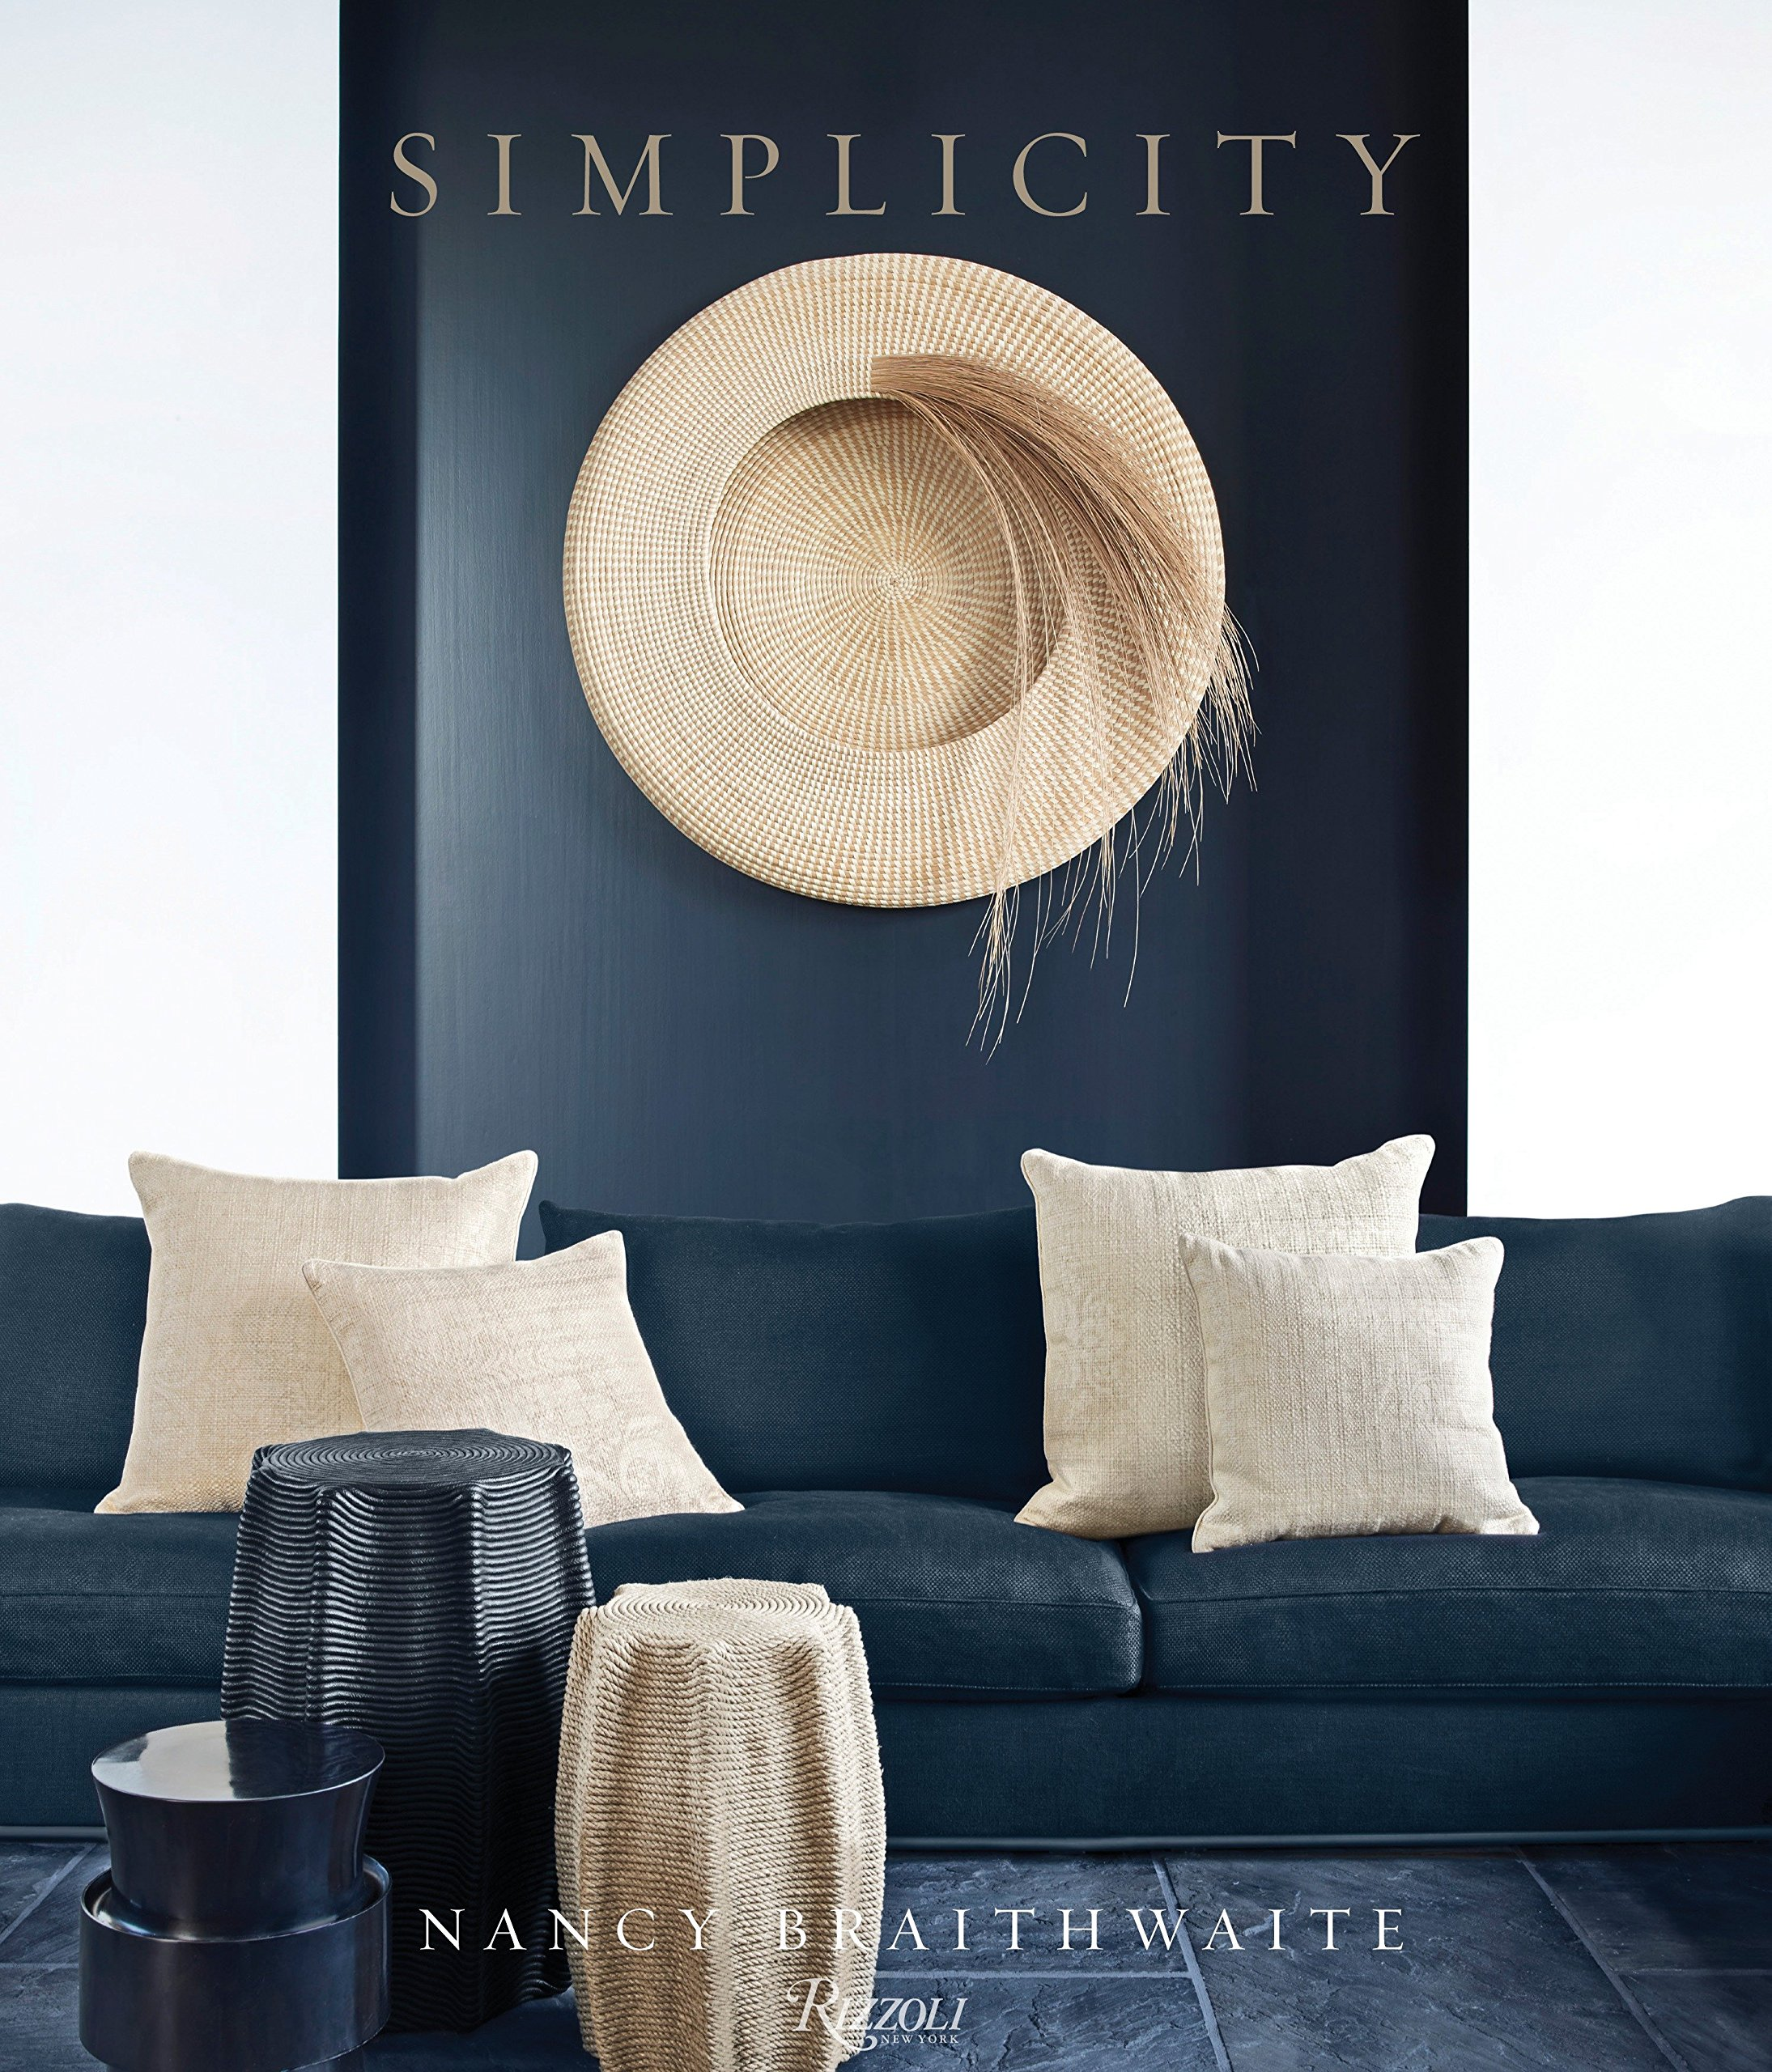 $33.01  • Simplicity By: Nancy Braithwaite